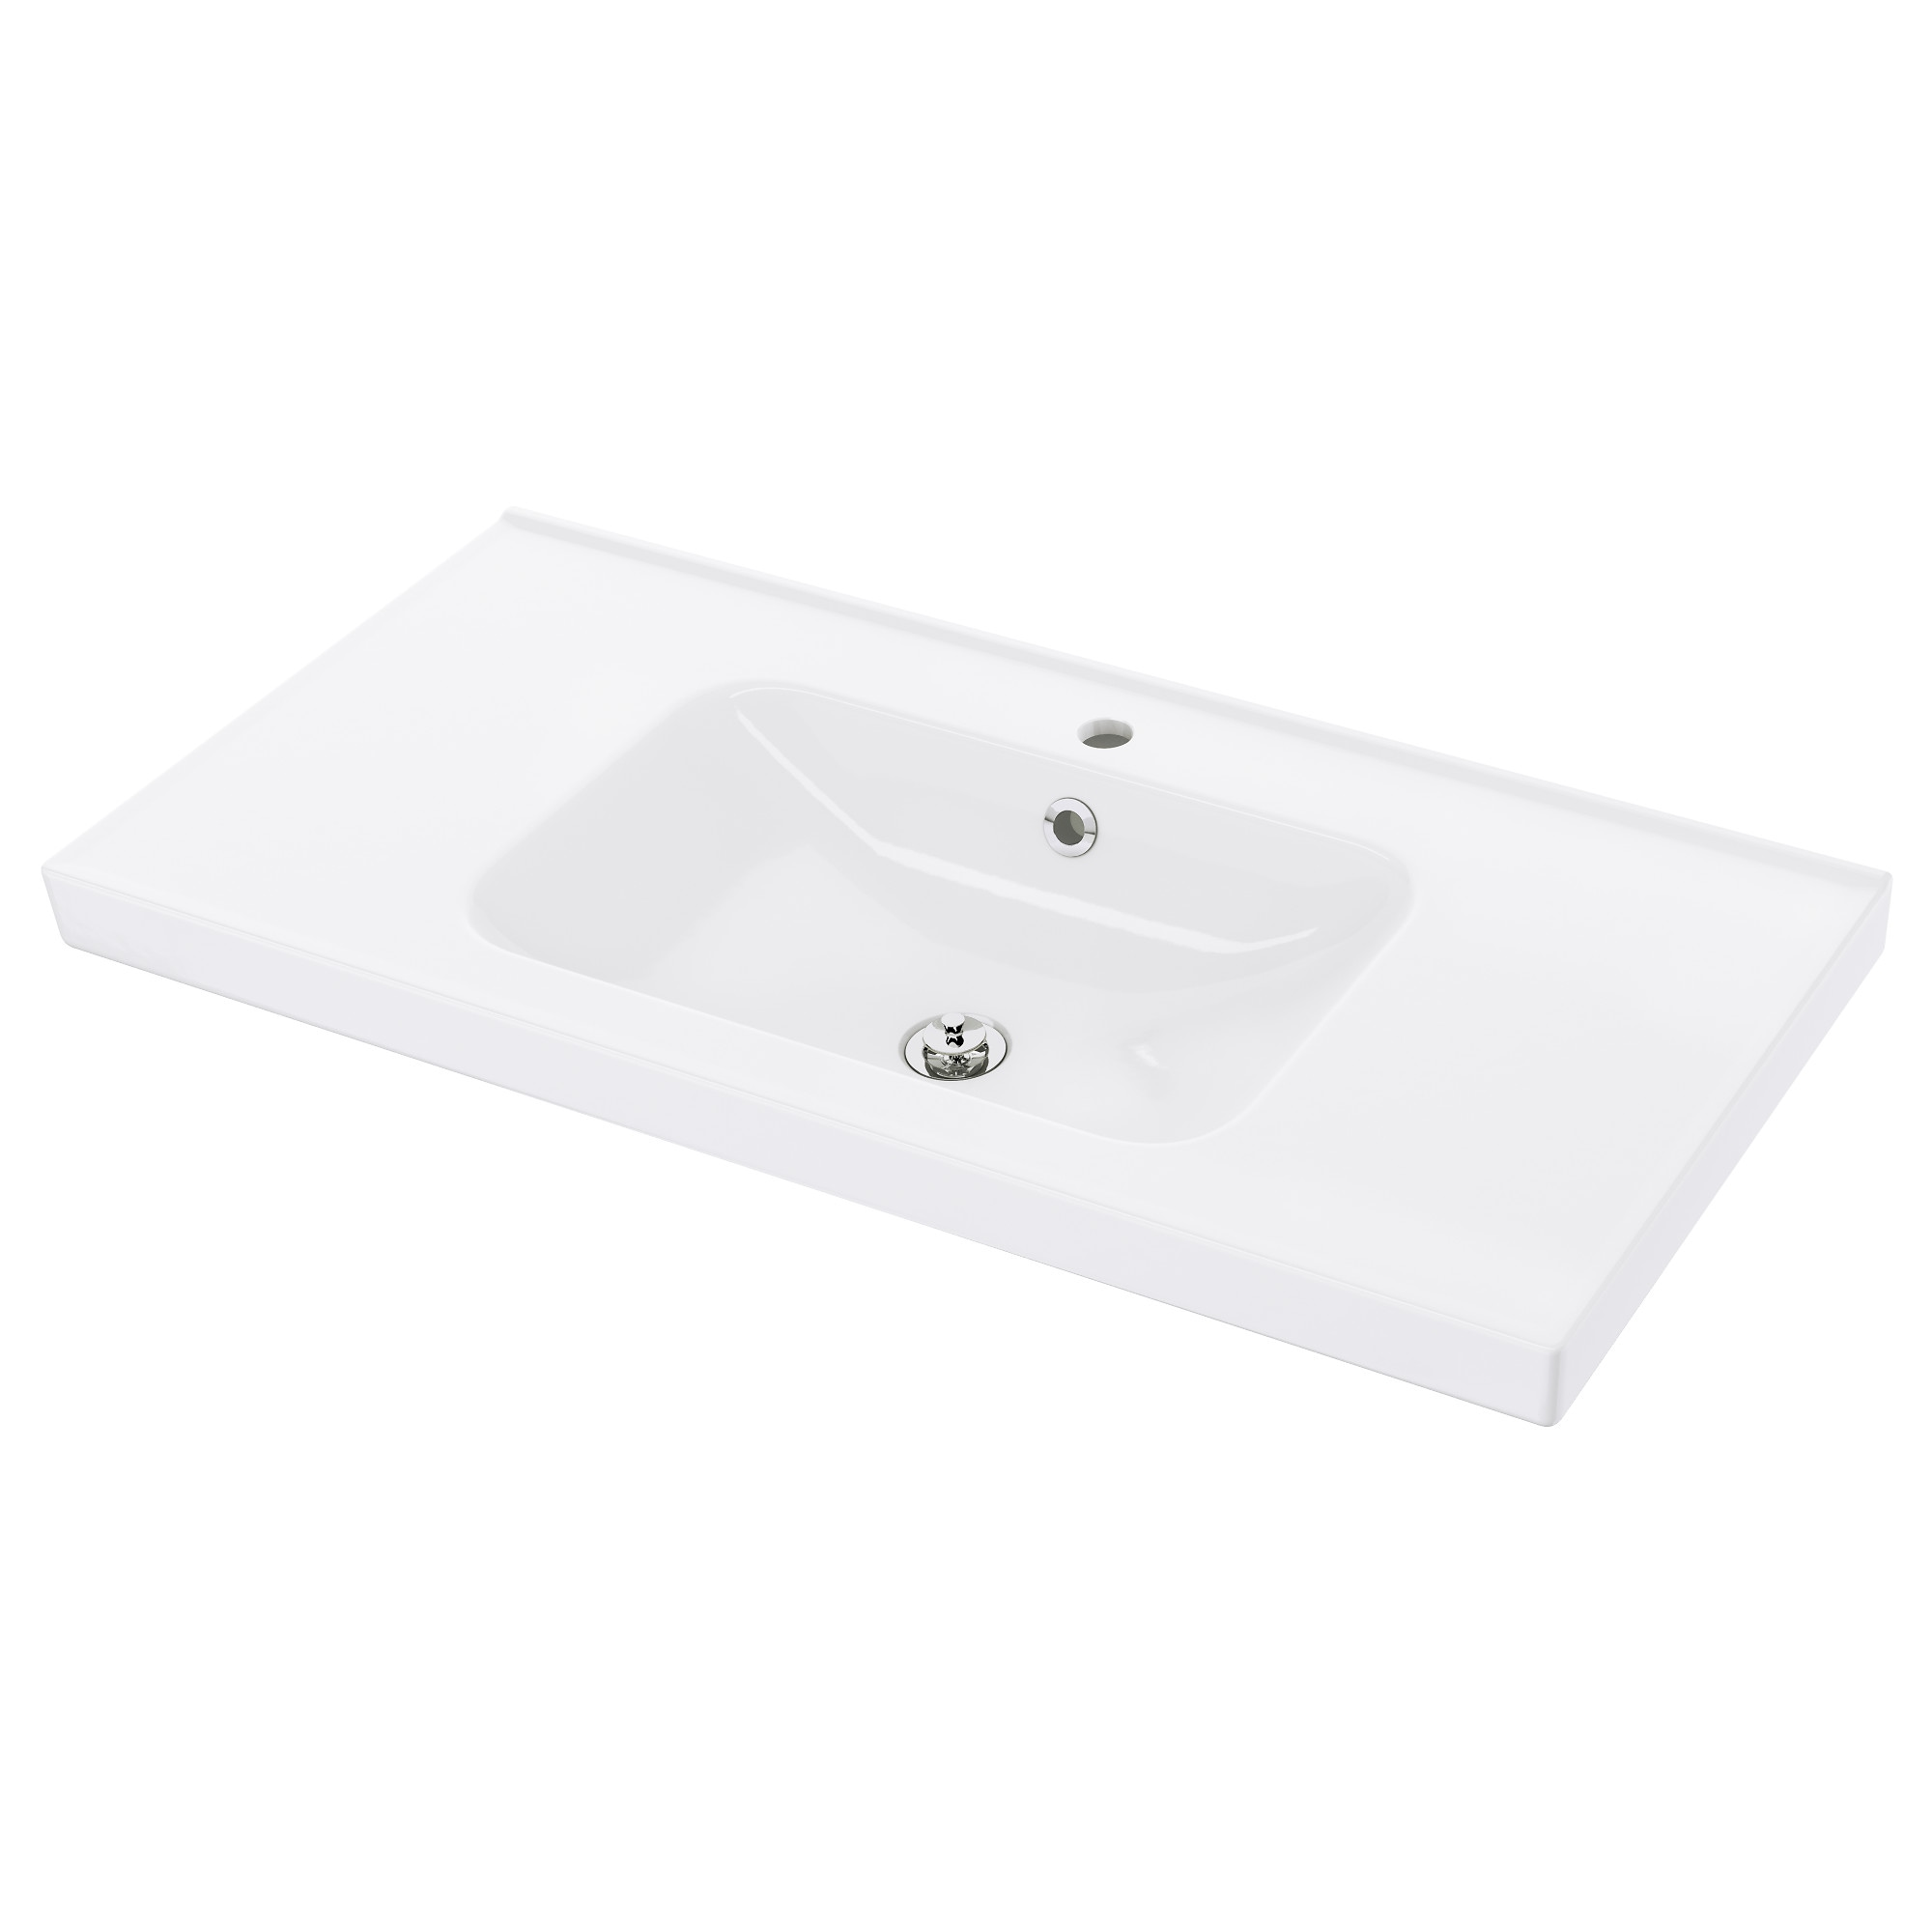 Single bathroom sink with two faucets - Odensvik Sink Width 40 1 2 Sink Cabinet Width 39 3